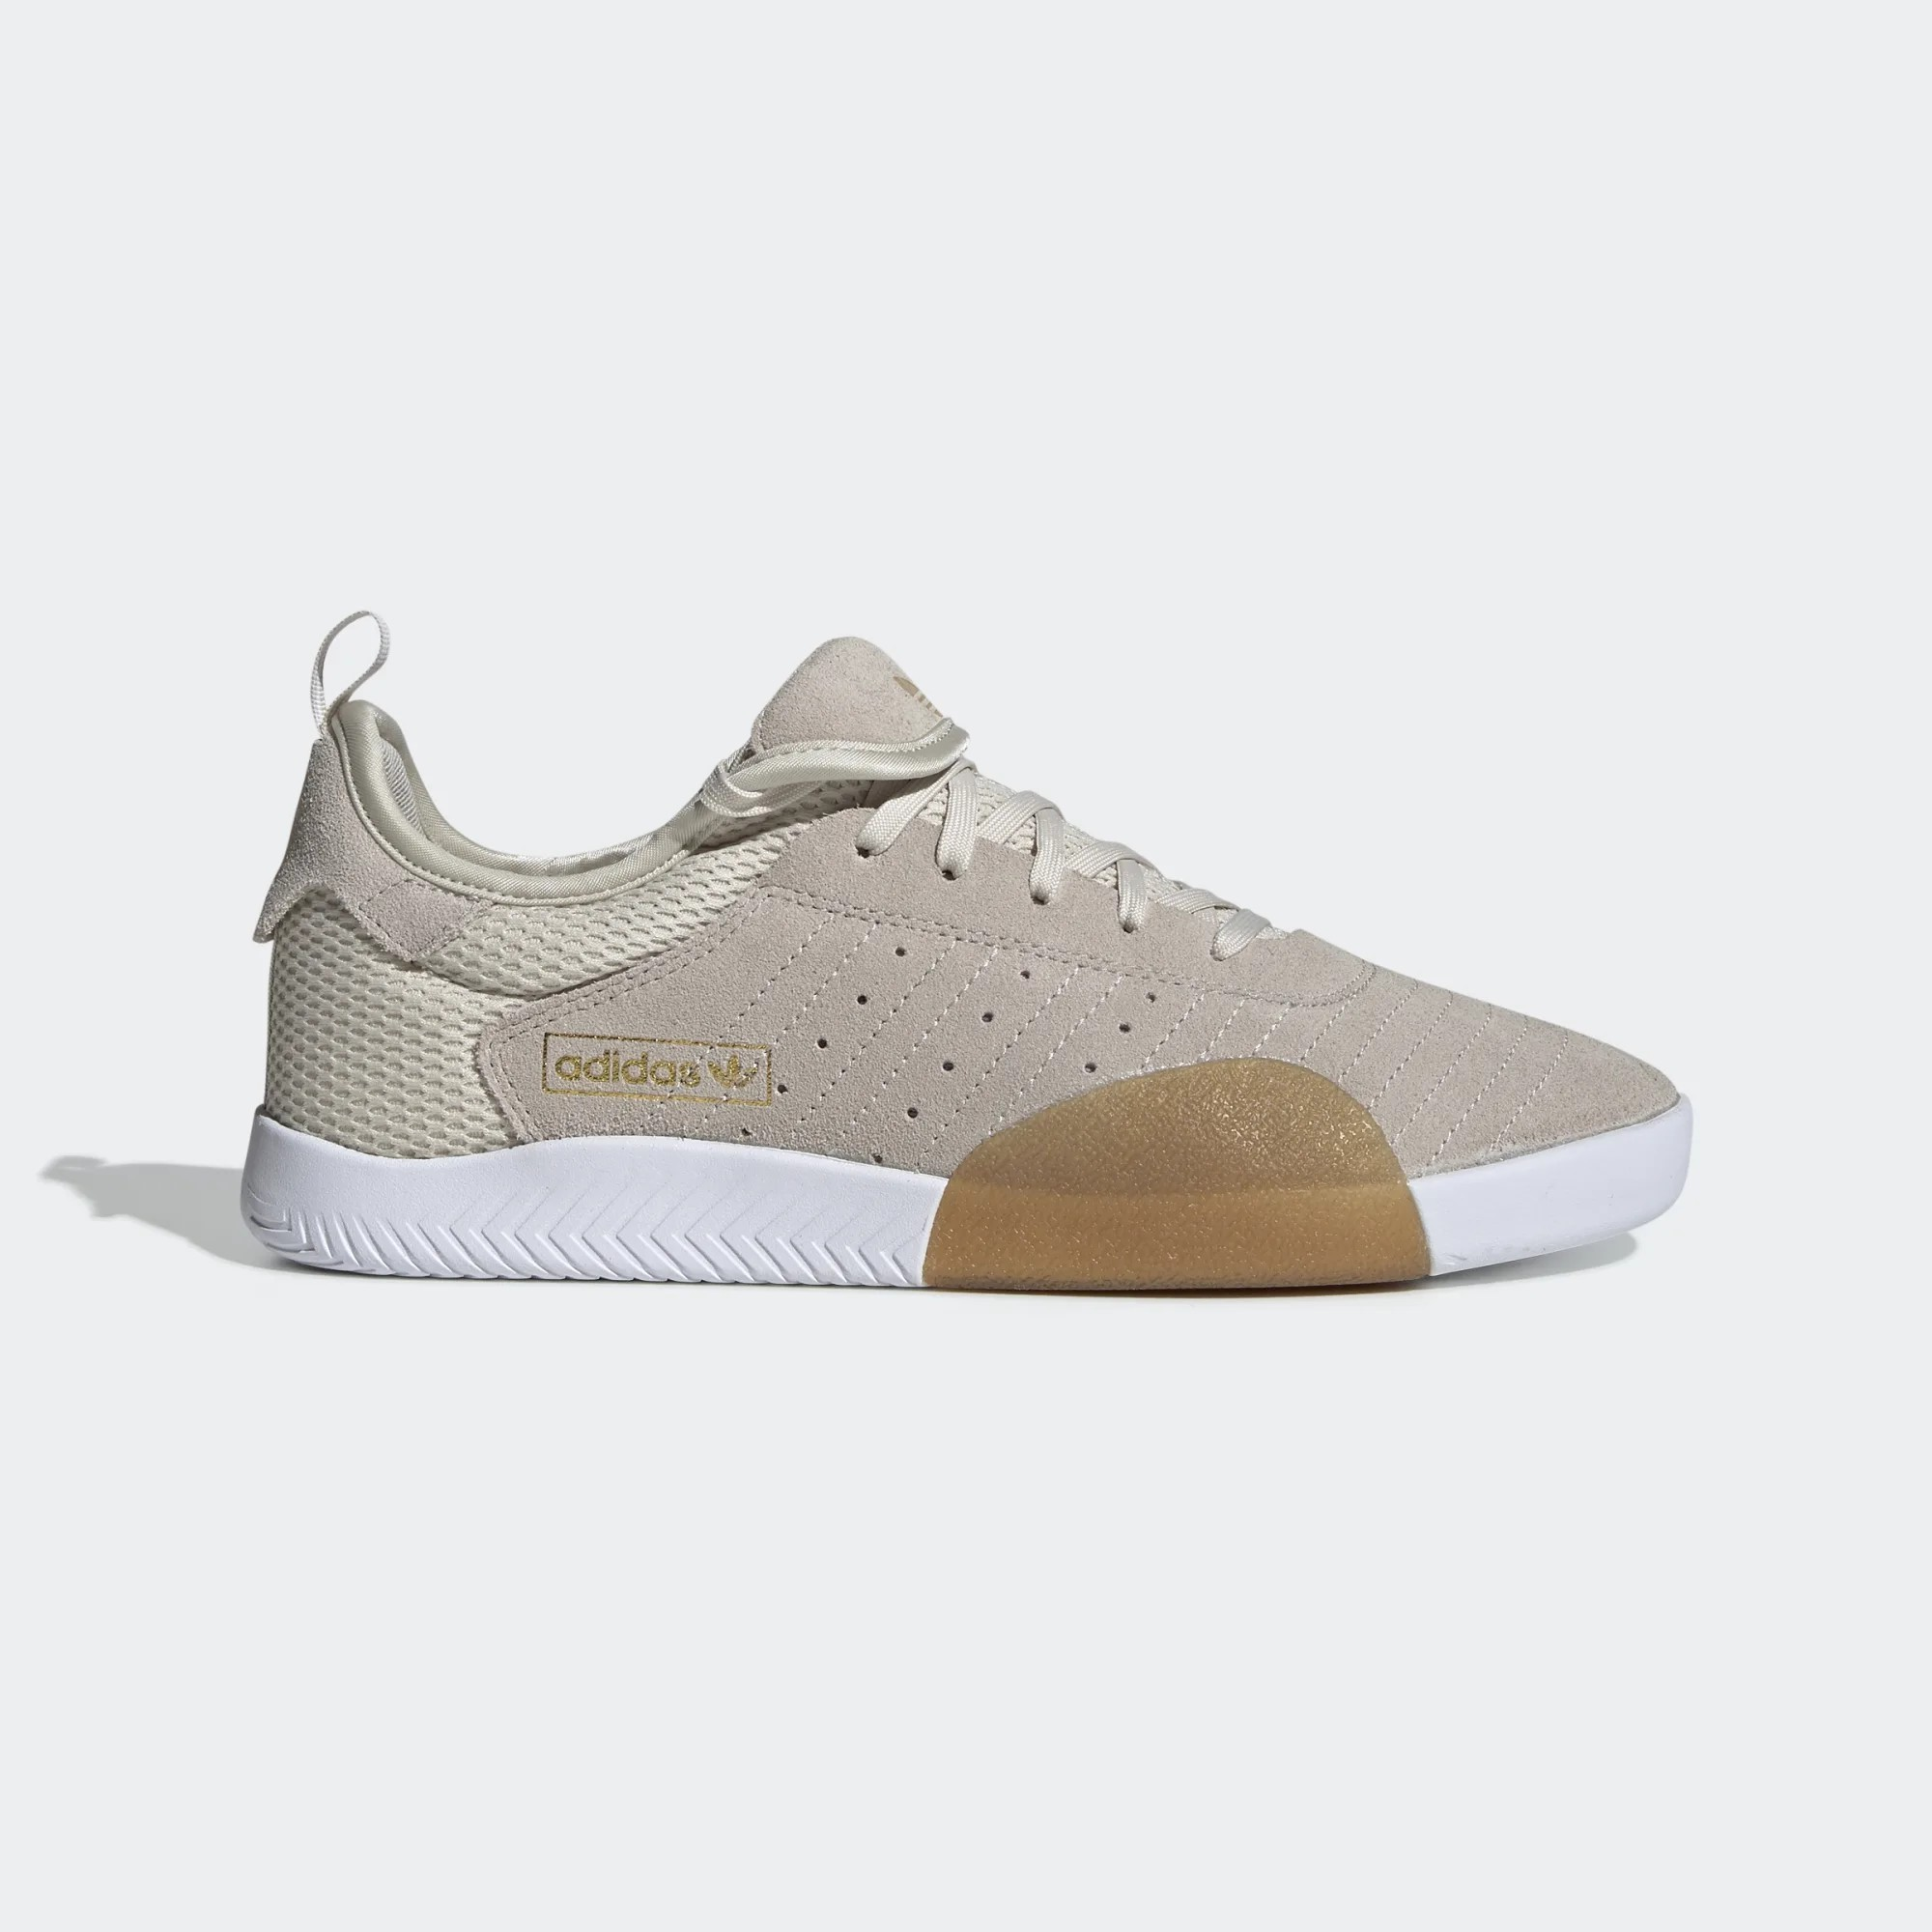 Adidas 3ST.003 Shoes Clear Brown/Cloud White/Gum DB3164